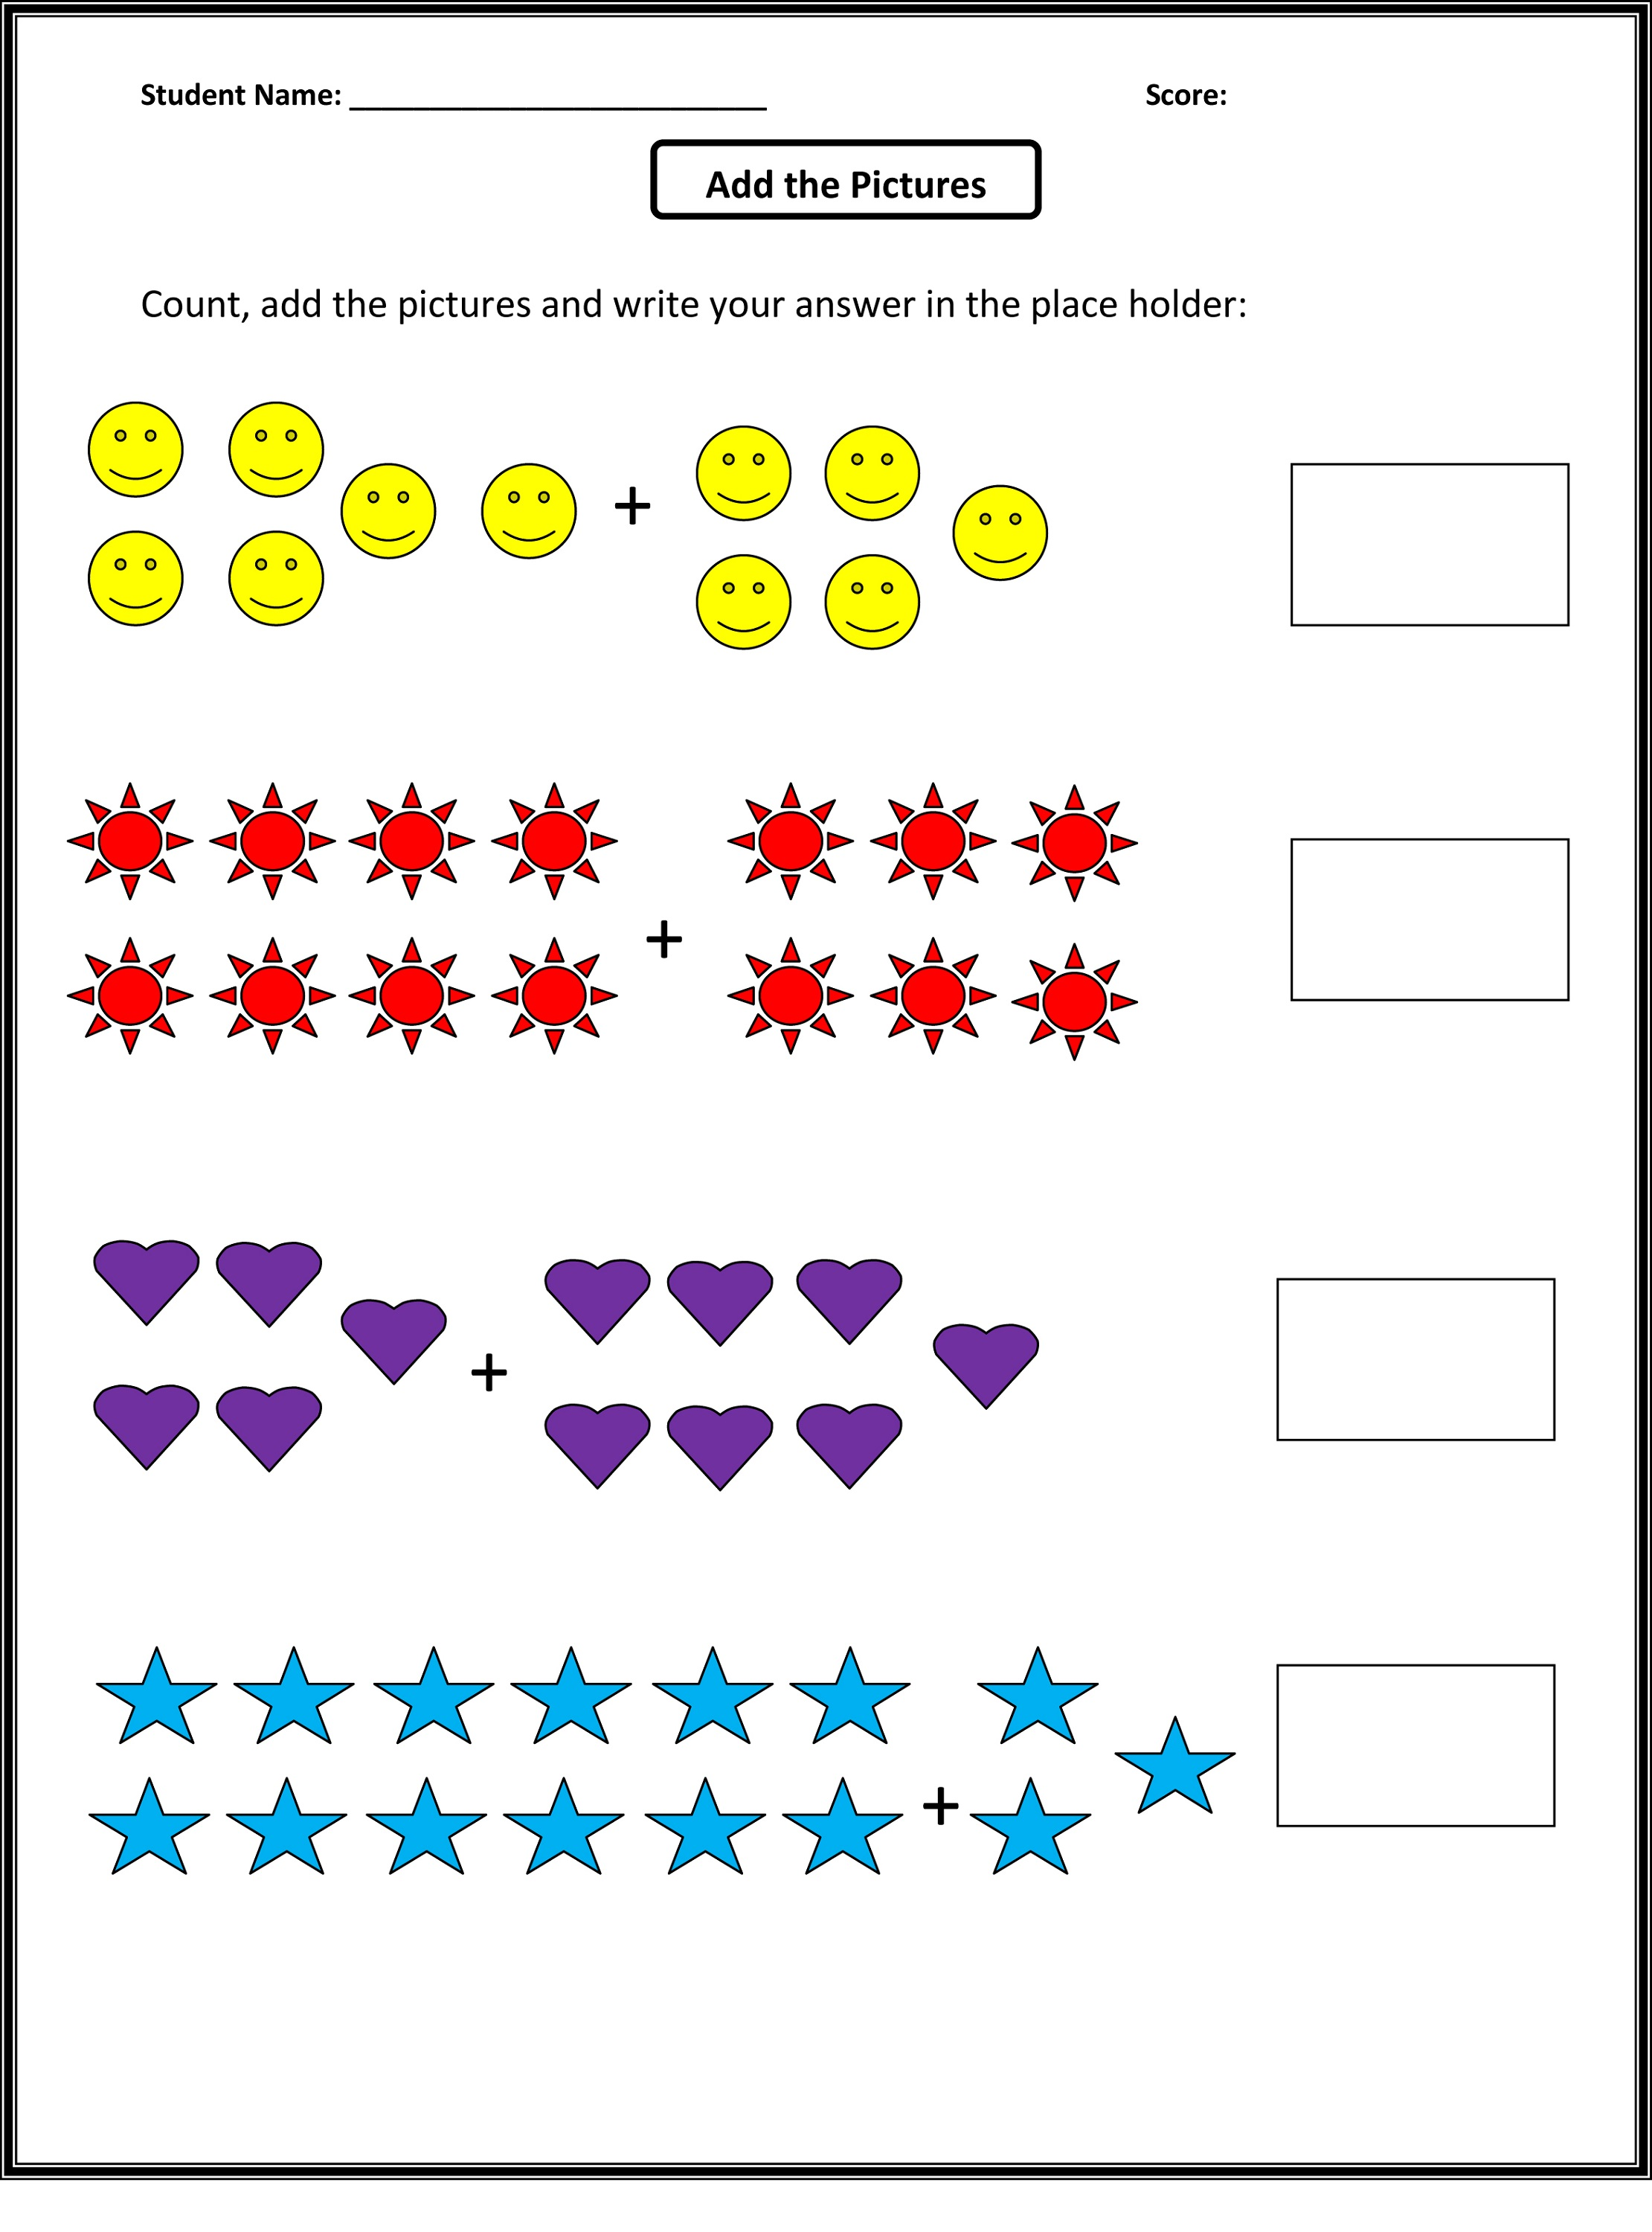 Worksheets. Math Worksheets For Kids. Opossumsoft ...